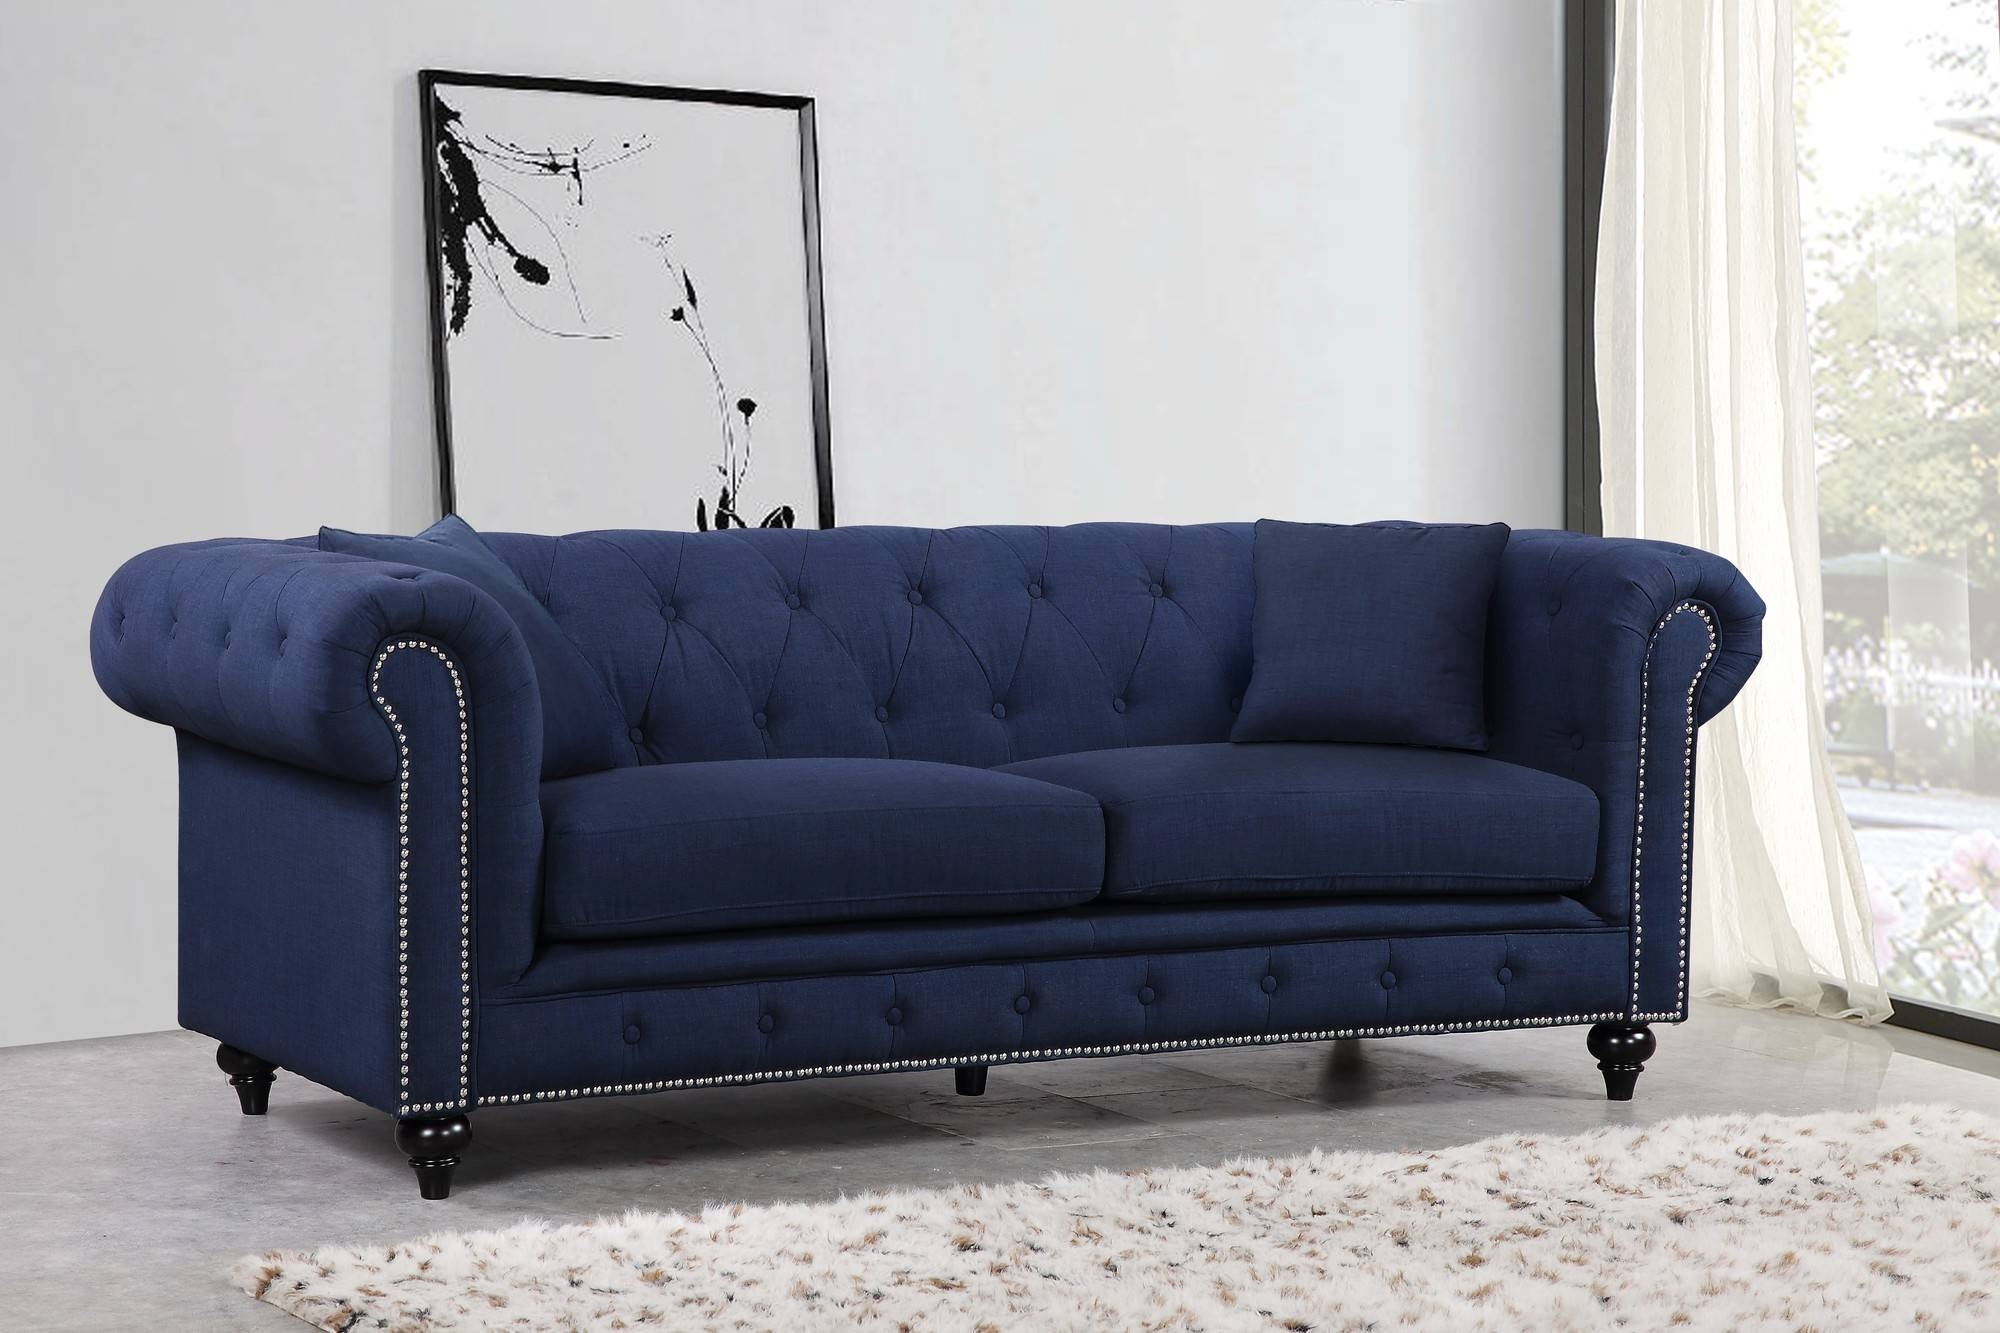 Sofas Center : Navy Blue Tuftedaas With Nailheads Velvetanavy intended for Blue Tufted Sofas (Image 27 of 30)